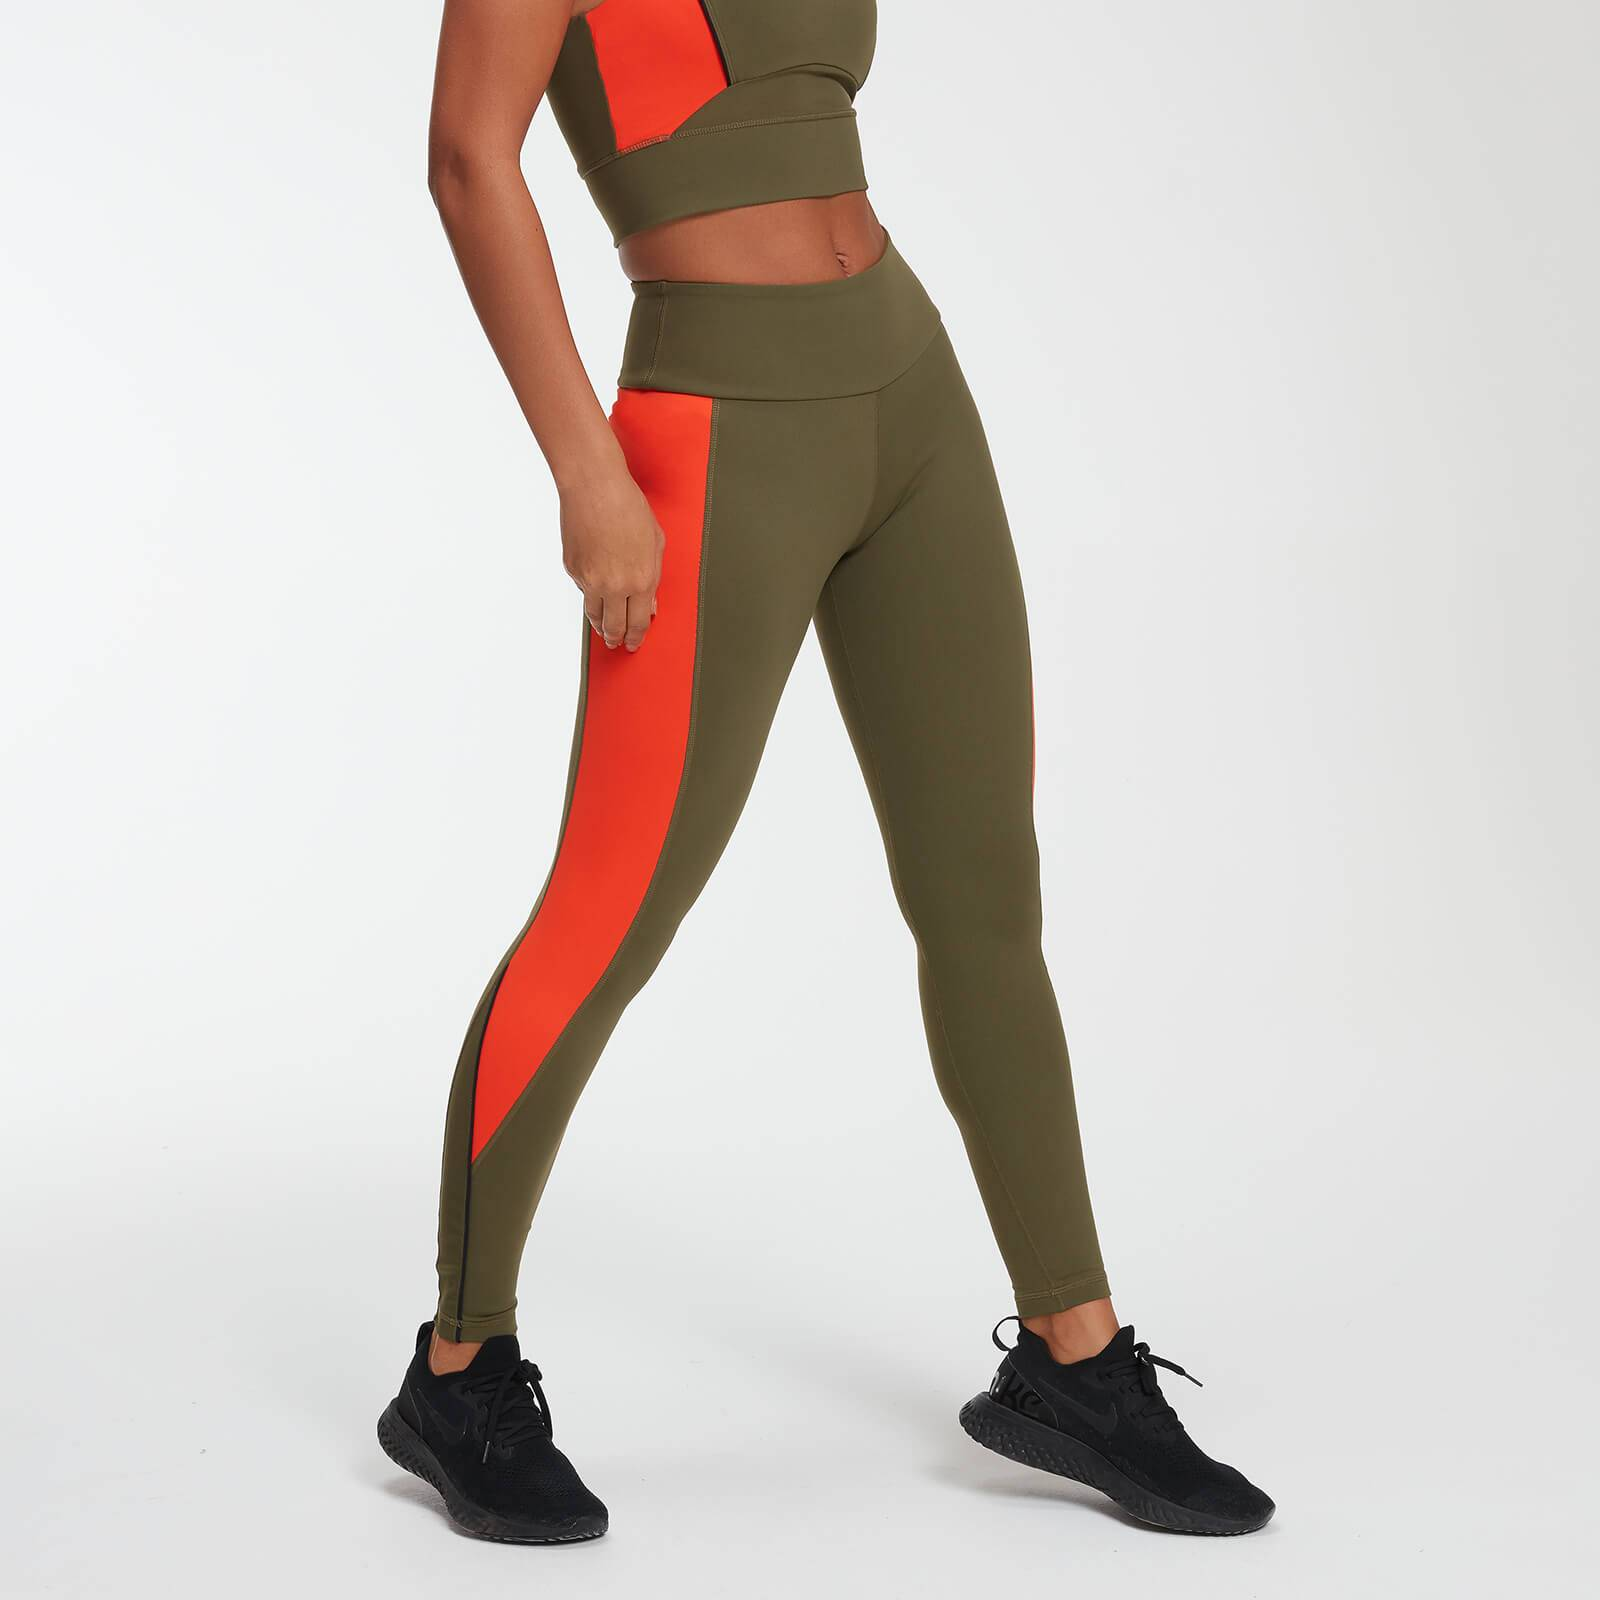 Myprotein Leggings Power - Avocado/Arancio - S